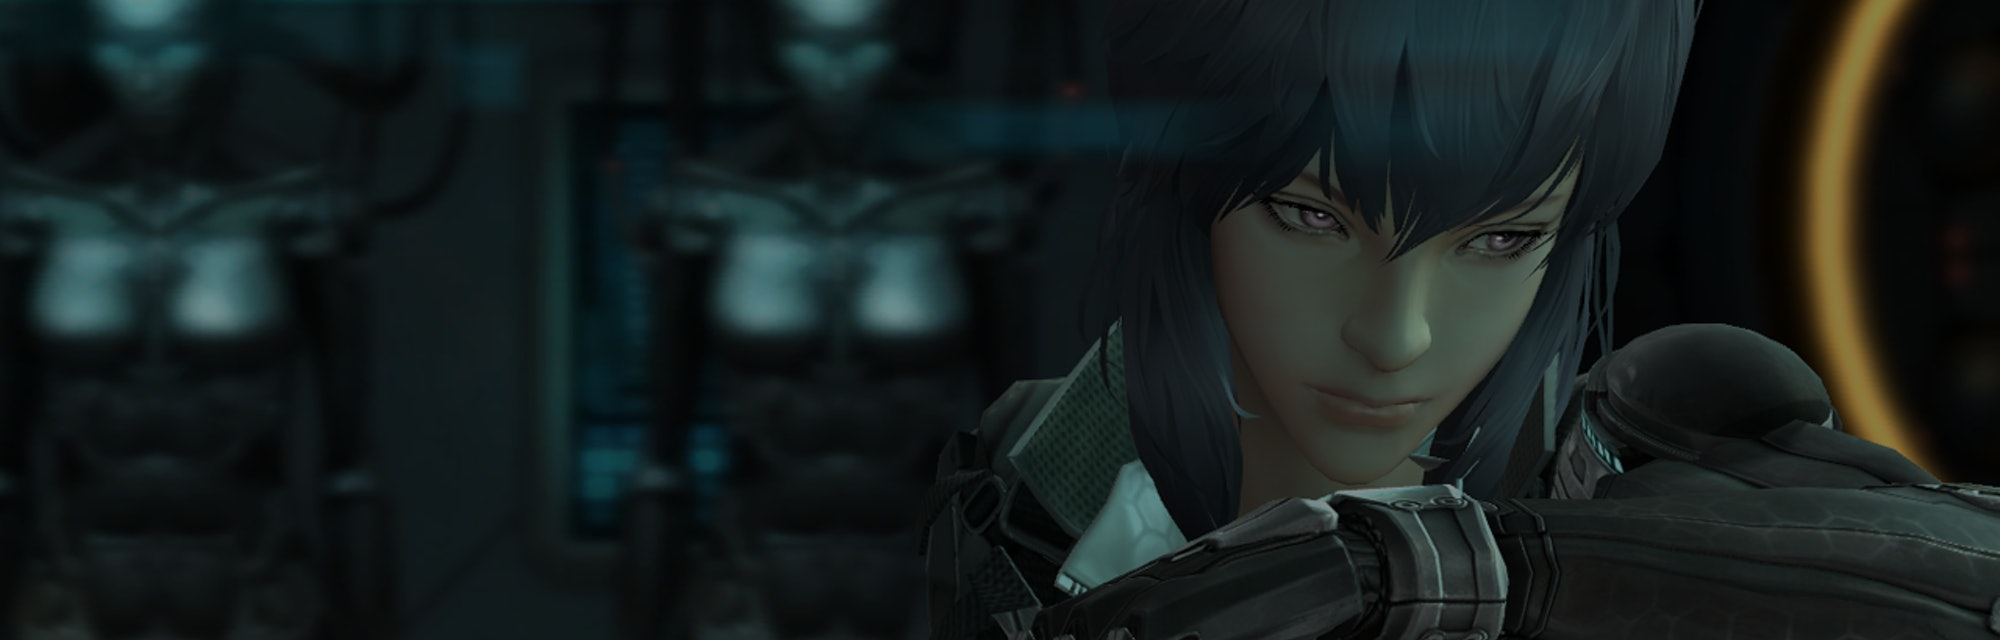 Ranking The Only 4 Ghost In The Shell Video Games